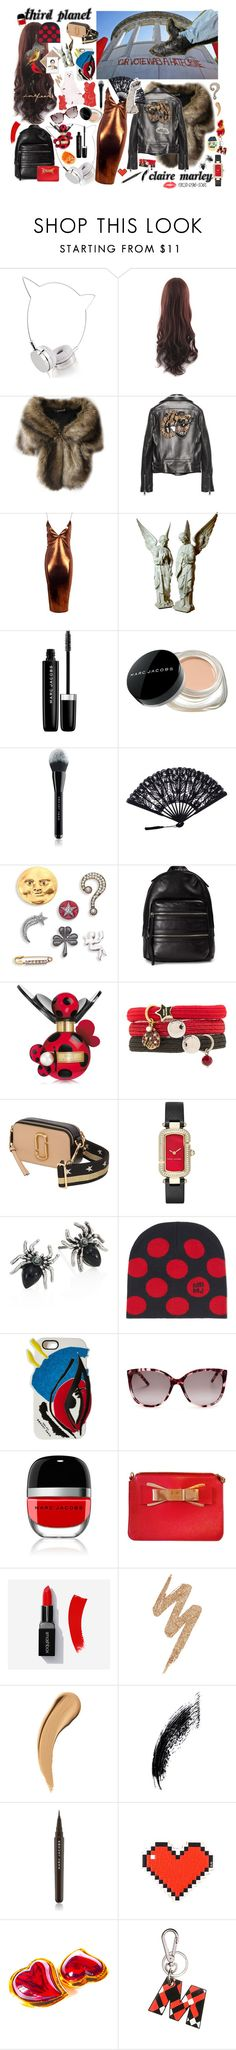 """""""Third Planet"""" by claire-marley on Polyvore featuring Skinnydip, Gucci, Boohoo, Marc Jacobs, Marc by Marc Jacobs, Urban Decay, Anya Hindmarch and Marni"""